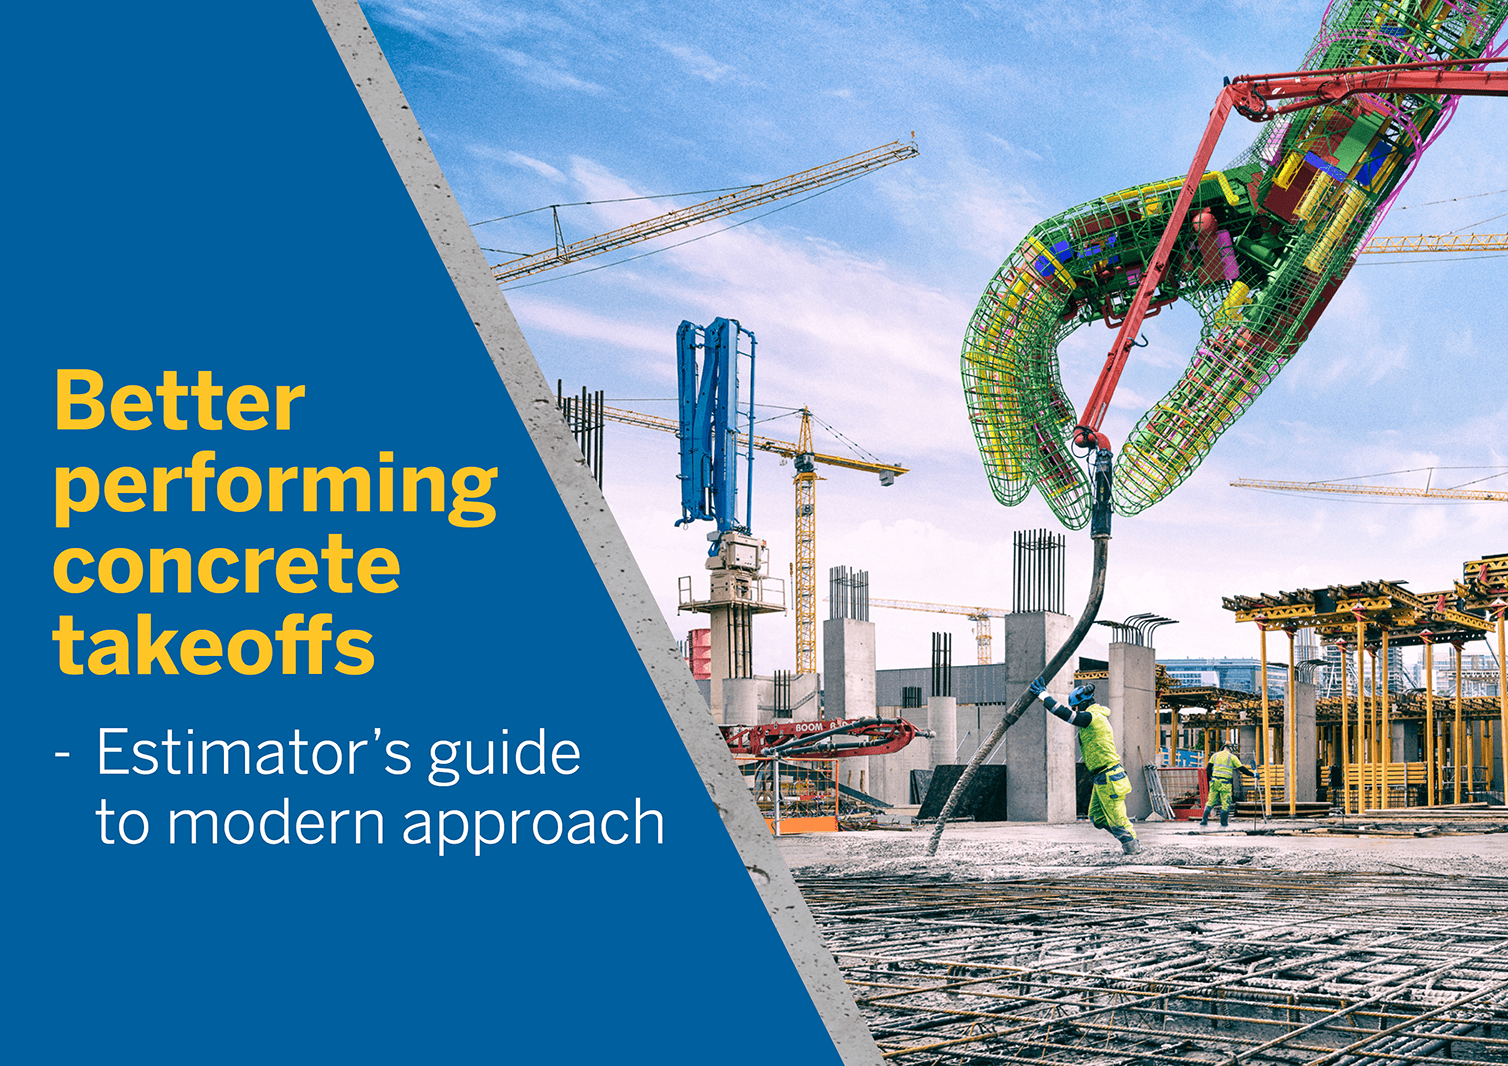 Better Performing Concrete Takeoffs: Estimator's Guide - Free Ebook